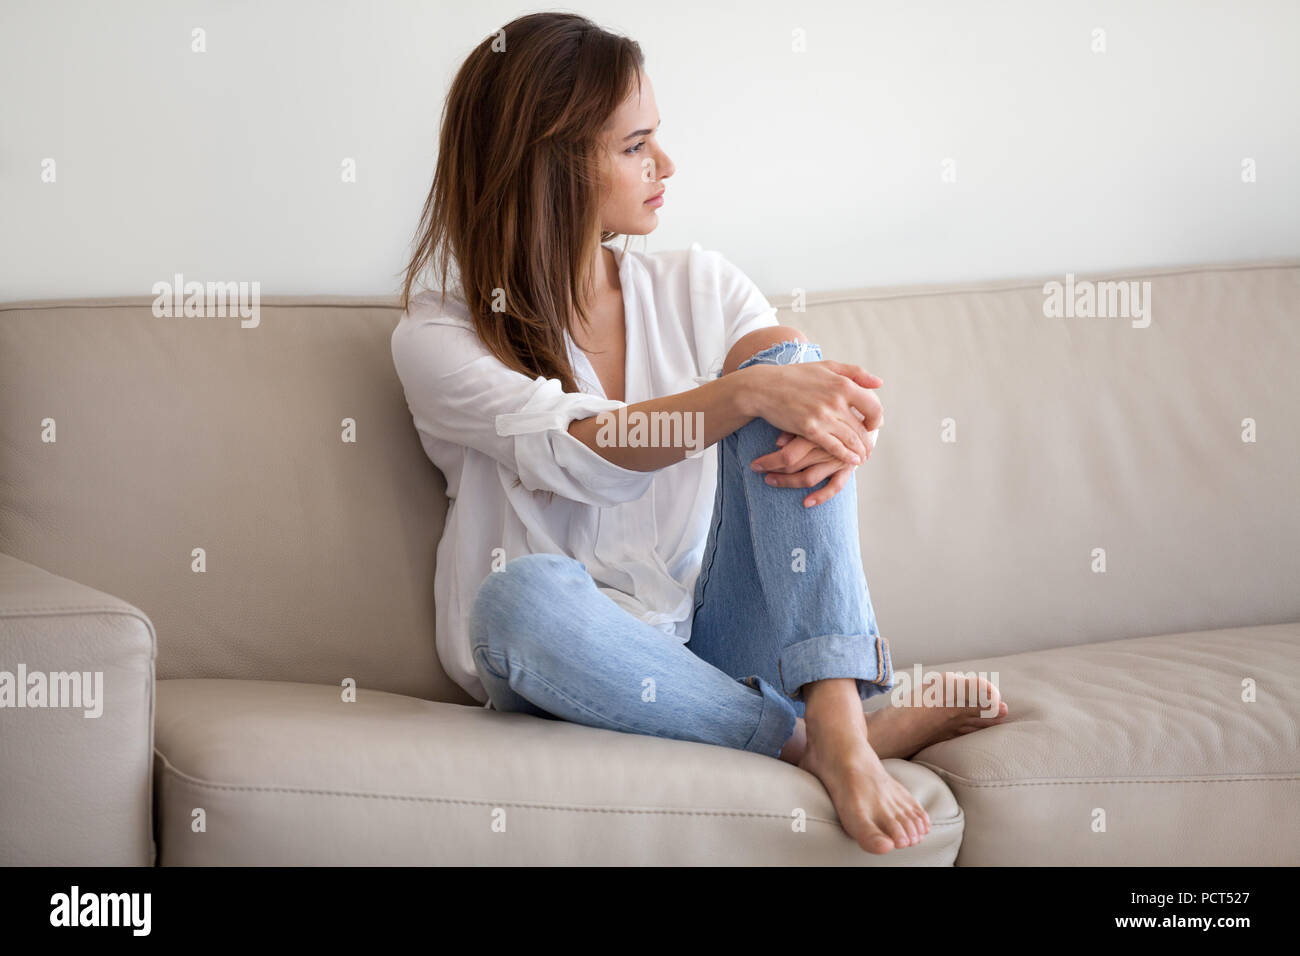 Sad Millennial Female Feeling Lonely Thinking About Relationship